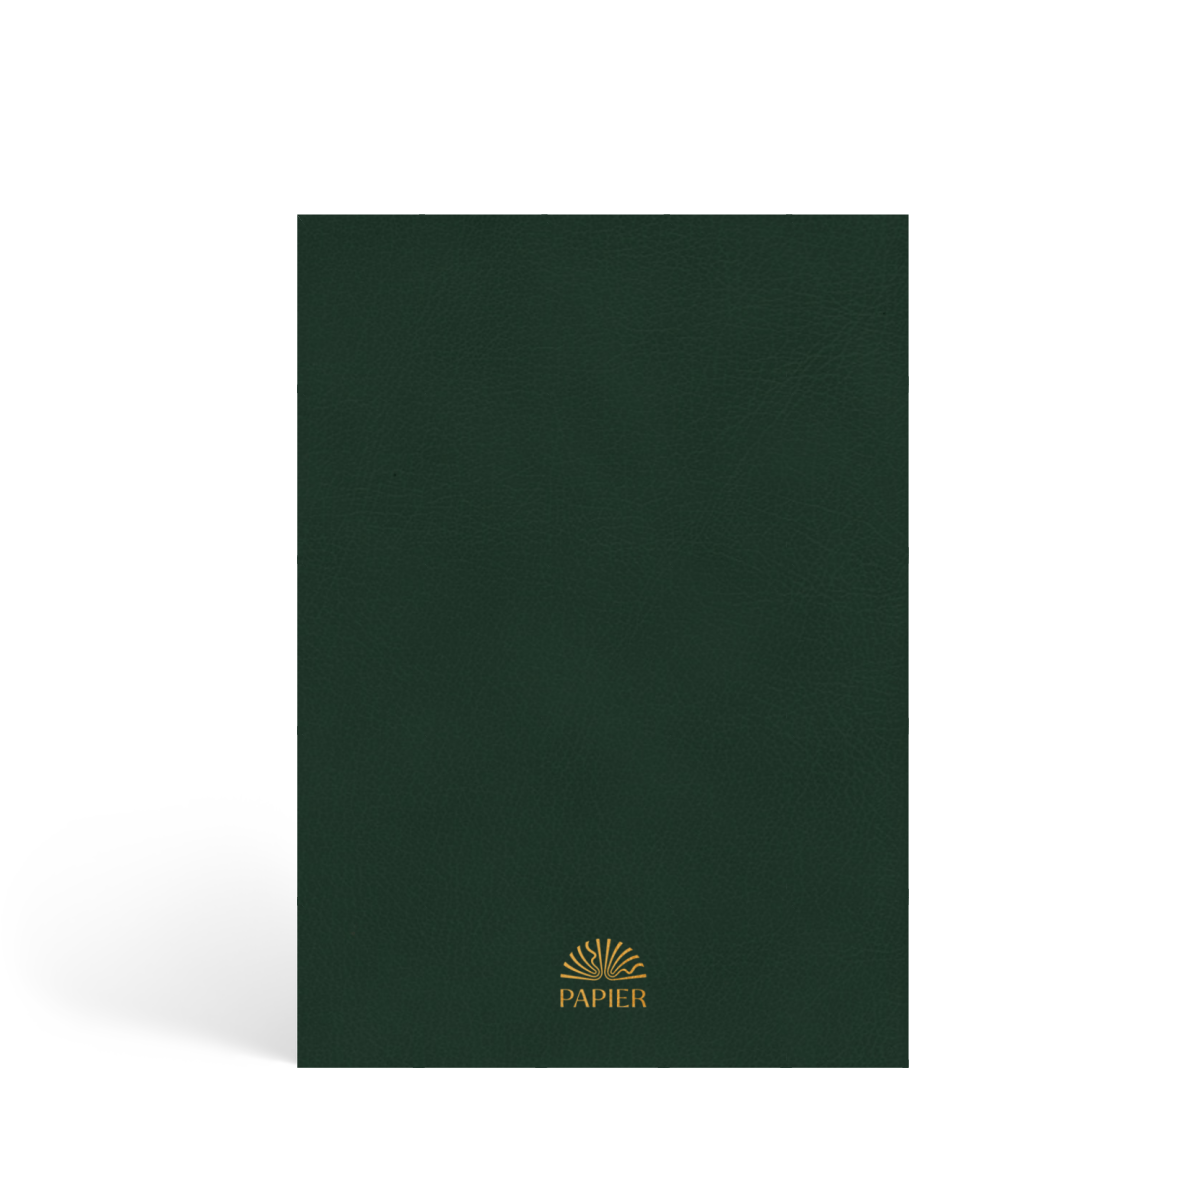 Https%3a%2f%2fwww.papier.com%2fproduct image%2f93705%2f5%2fpine green 2020 23437 back 1573232672.png?ixlib=rb 1.1